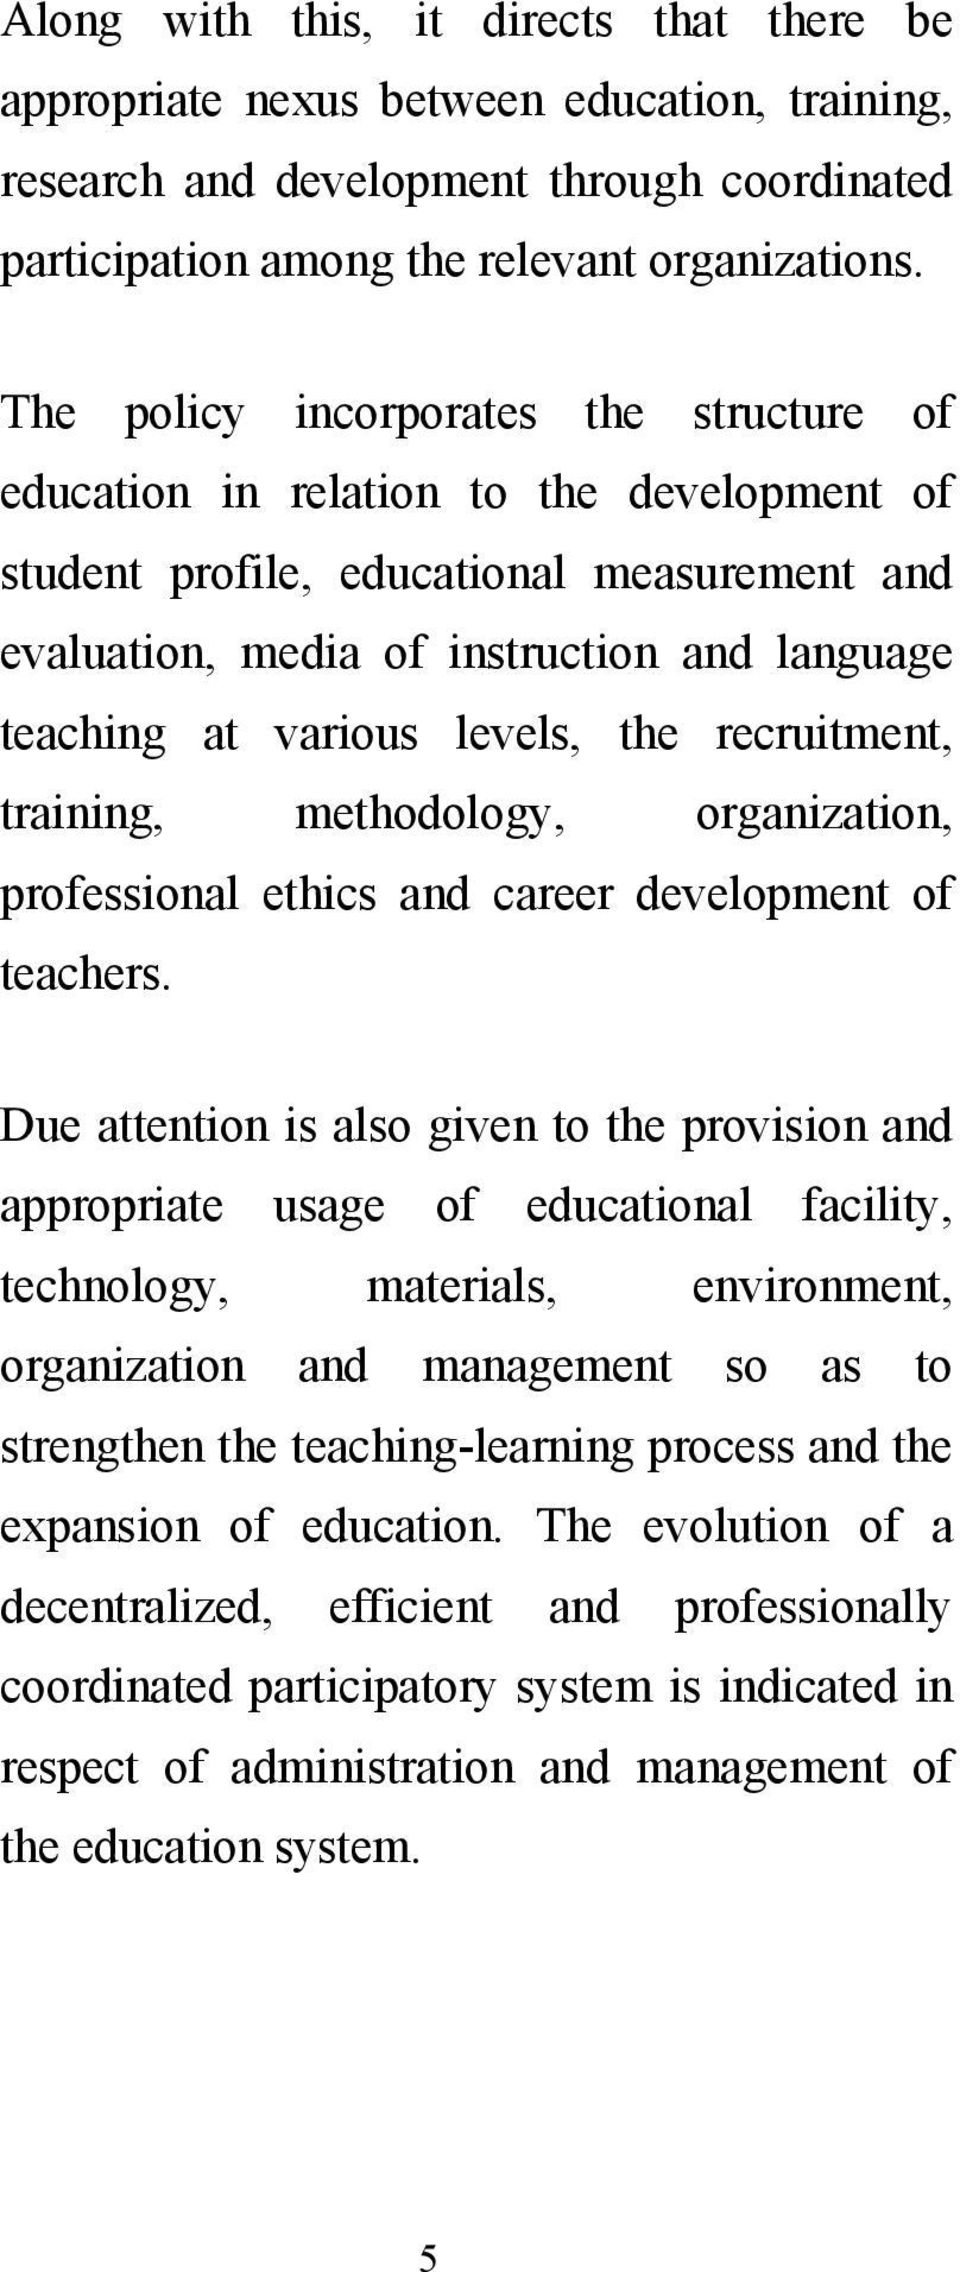 levels, the recruitment, training, methodology, organization, professional ethics and career development of teachers.